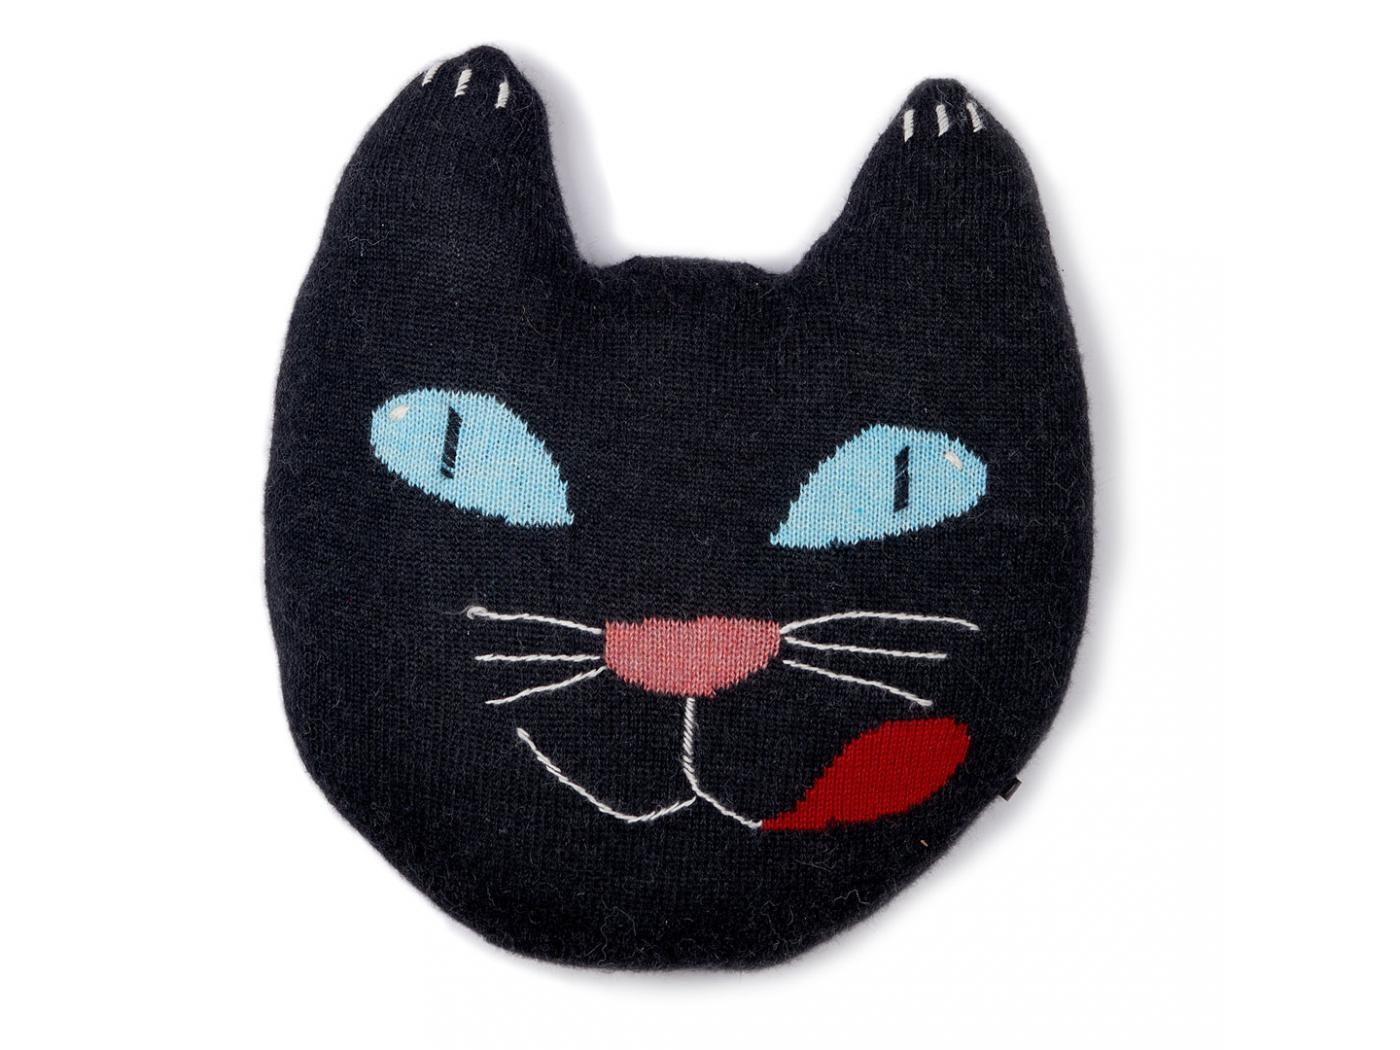 coussin-oeuf-nyc-chat-cmonpremier